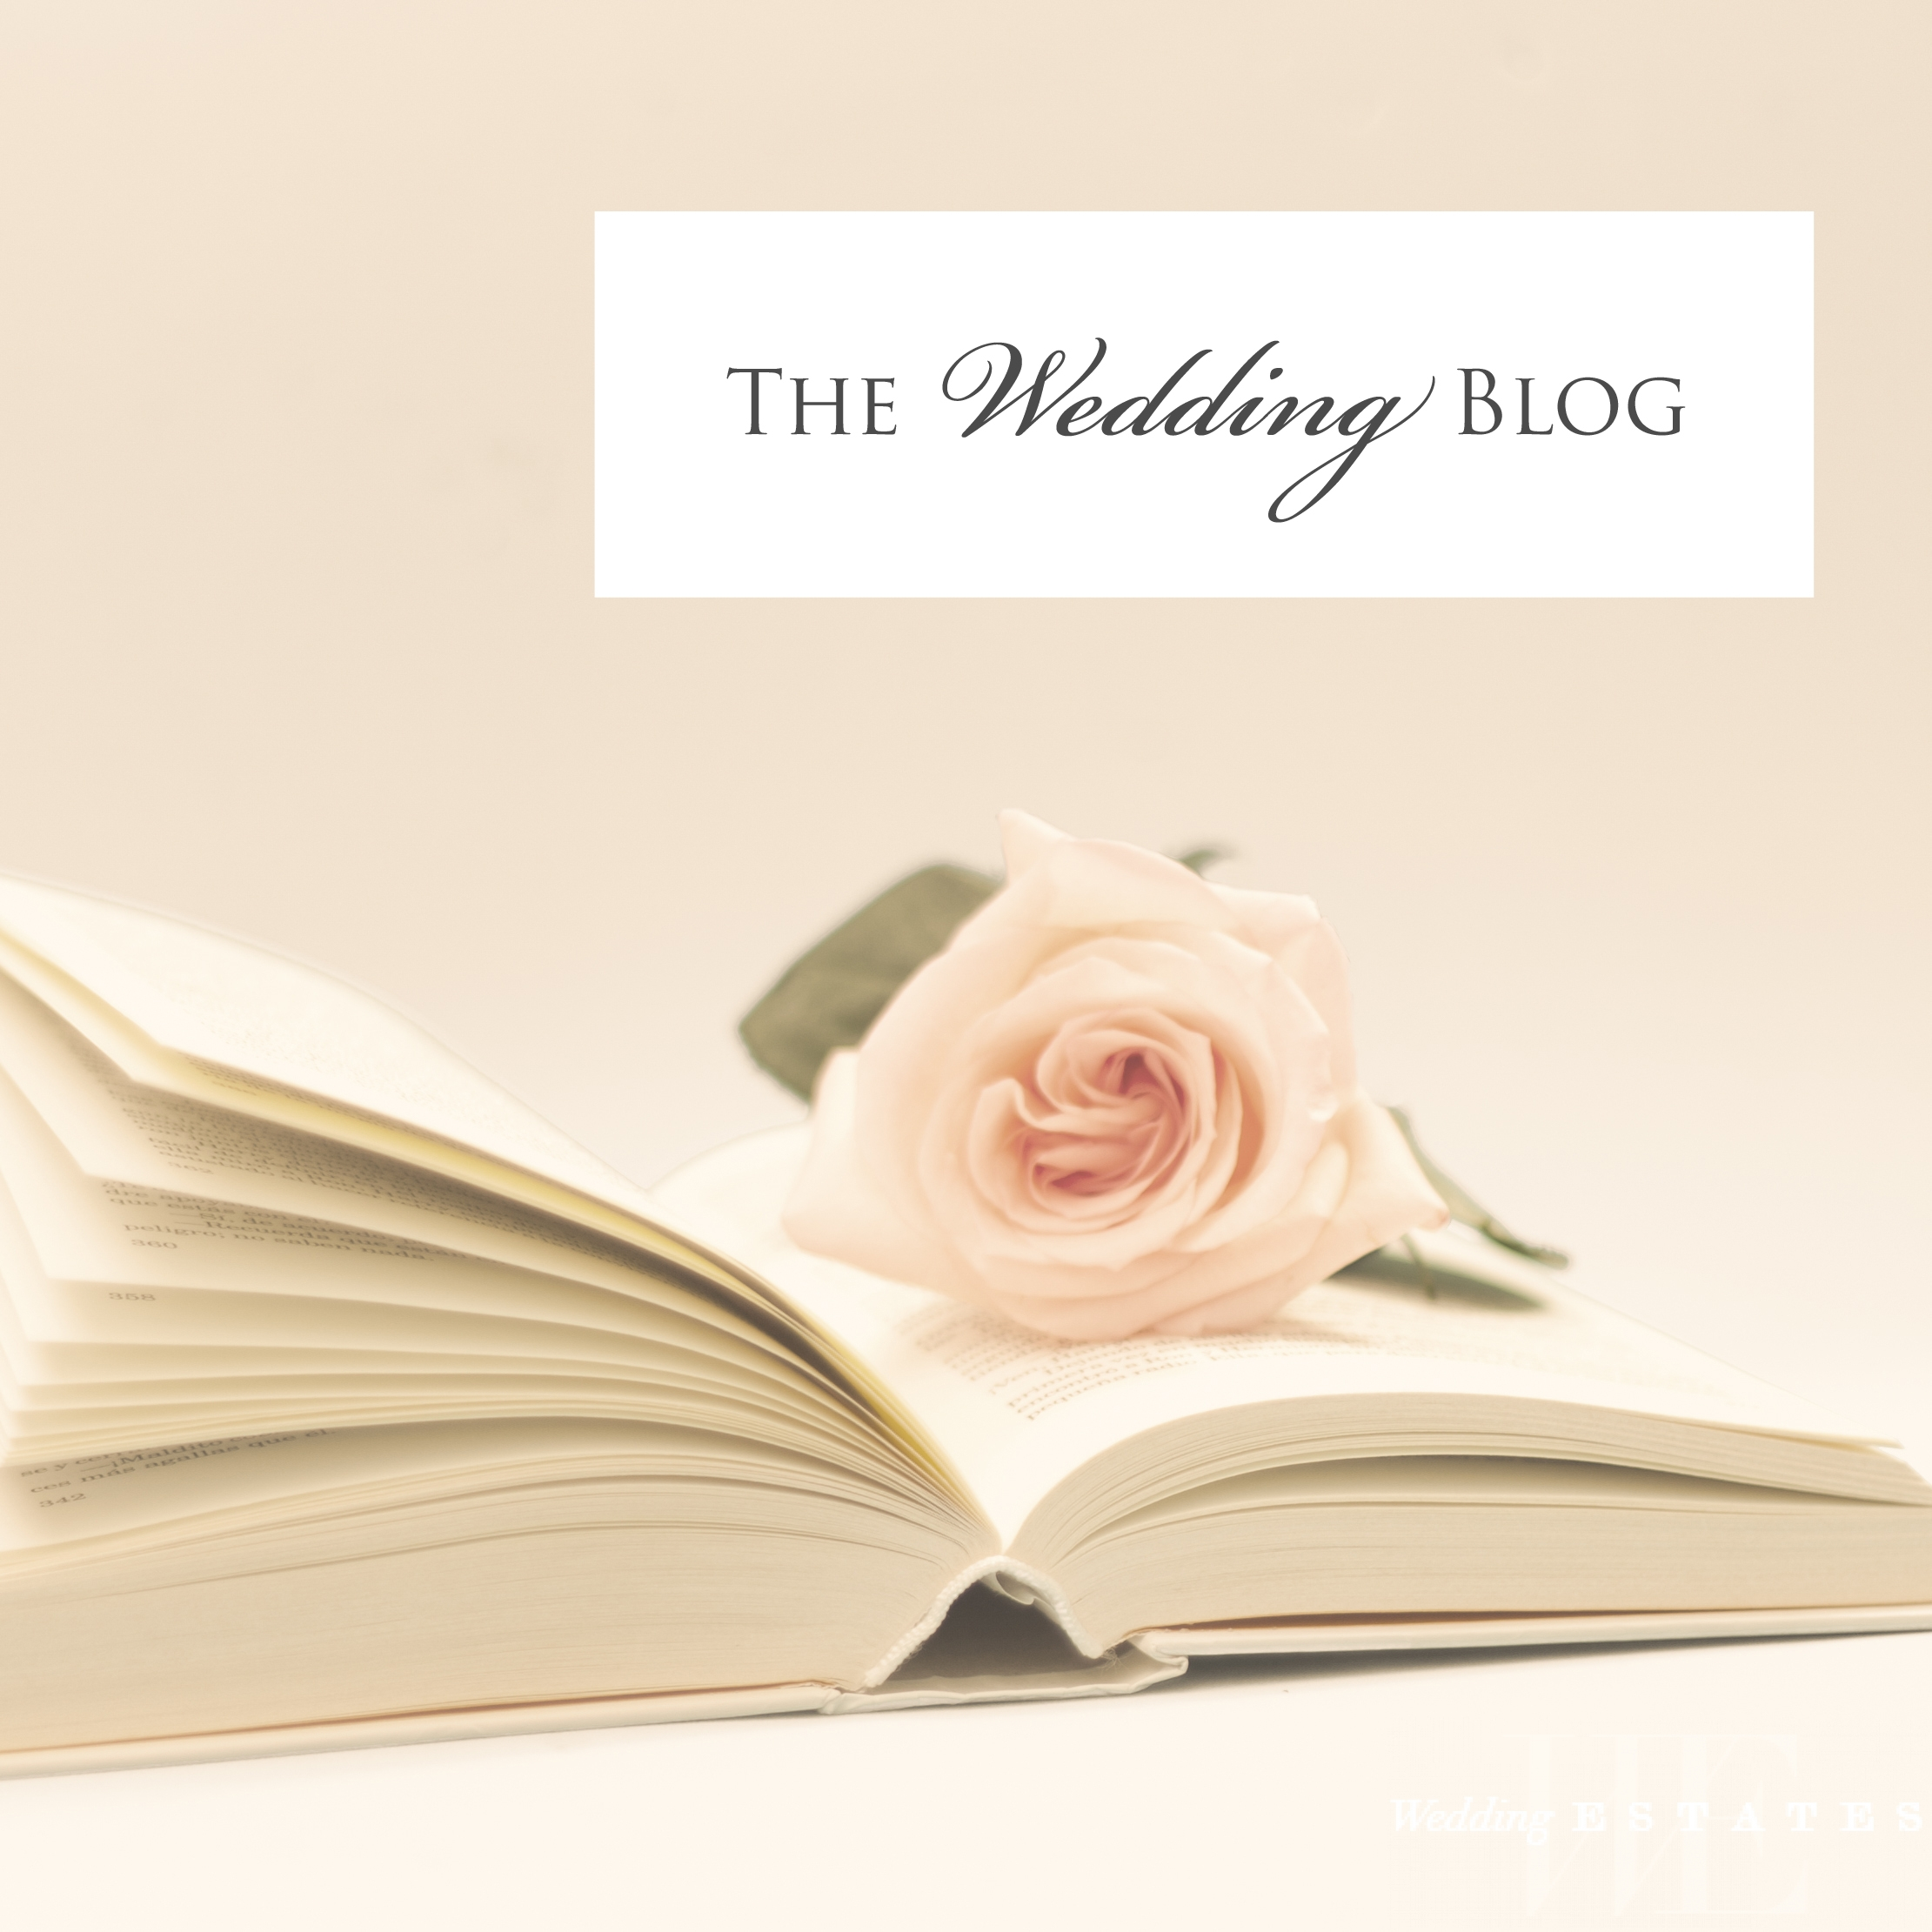 Best wedding blogs for inspiration wedding estates best wedding blogs for inspiration junglespirit